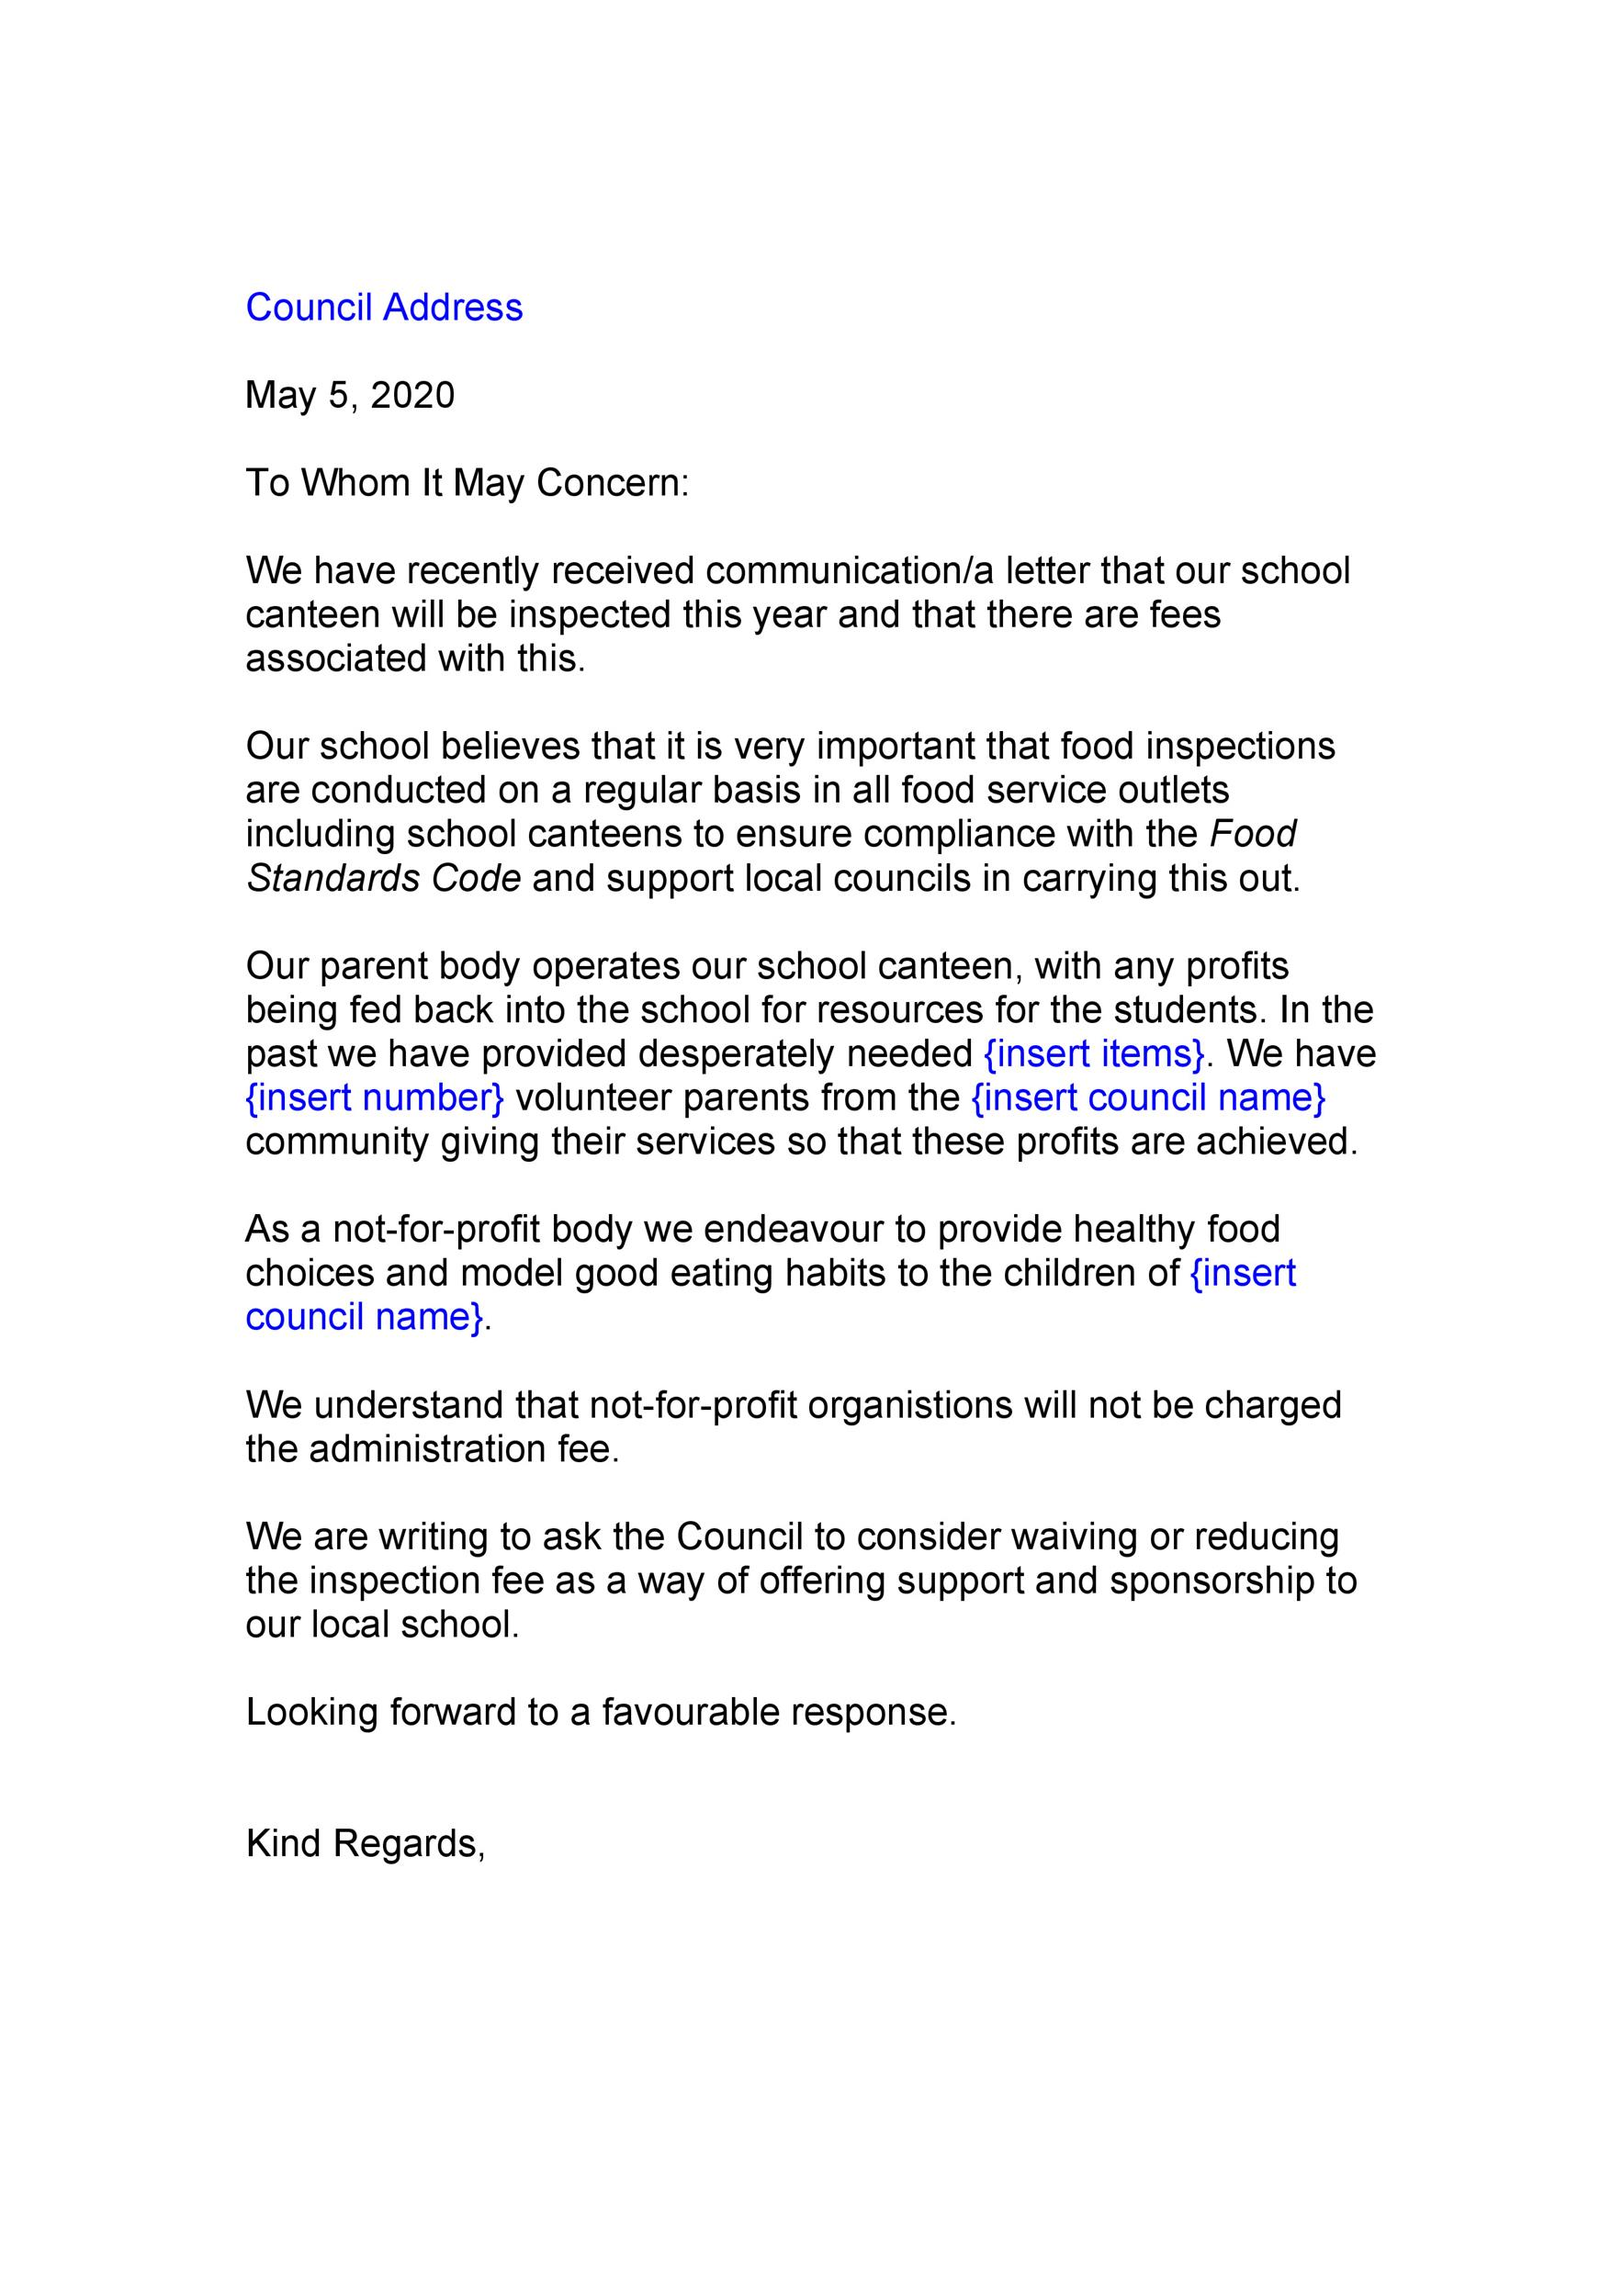 Free to whom it may concern letter 29